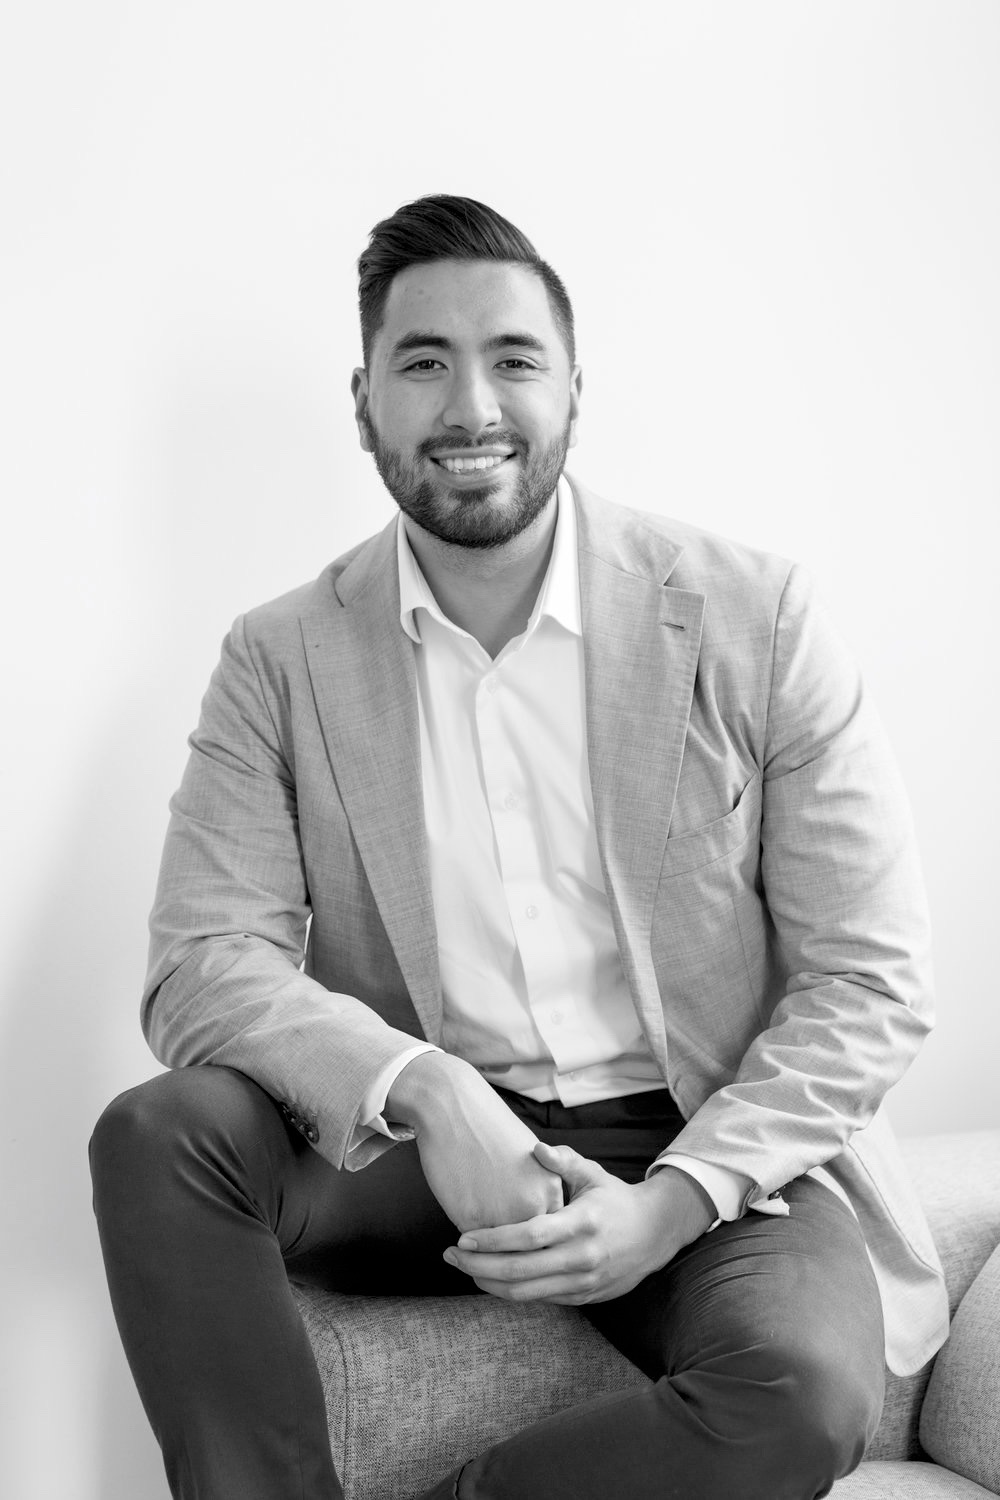 Aaron Thoo  Operations Director   Aaron describes himself as calm, cool, and collected. Character traits that are pivotal to his role as Operations Manager. With his analytical mind and attention to detail, he ensures that all projects are of outstanding quality and delivered smoothly and with an excellent service experience for the client. His ultimate goal is to improve each client's renovation experience.  Aaron graduated from UTS with a Bachelor of Civil Engineering and gained valuable experience in the construction industry working for ten years as a Project Manager and Financial Controller for high rise residential developments.  He loves the high standards of the Integriti brand and the down-to-earth nature of his colleagues. His never-give-up attitude fuels his constant drive for improvement and growth.